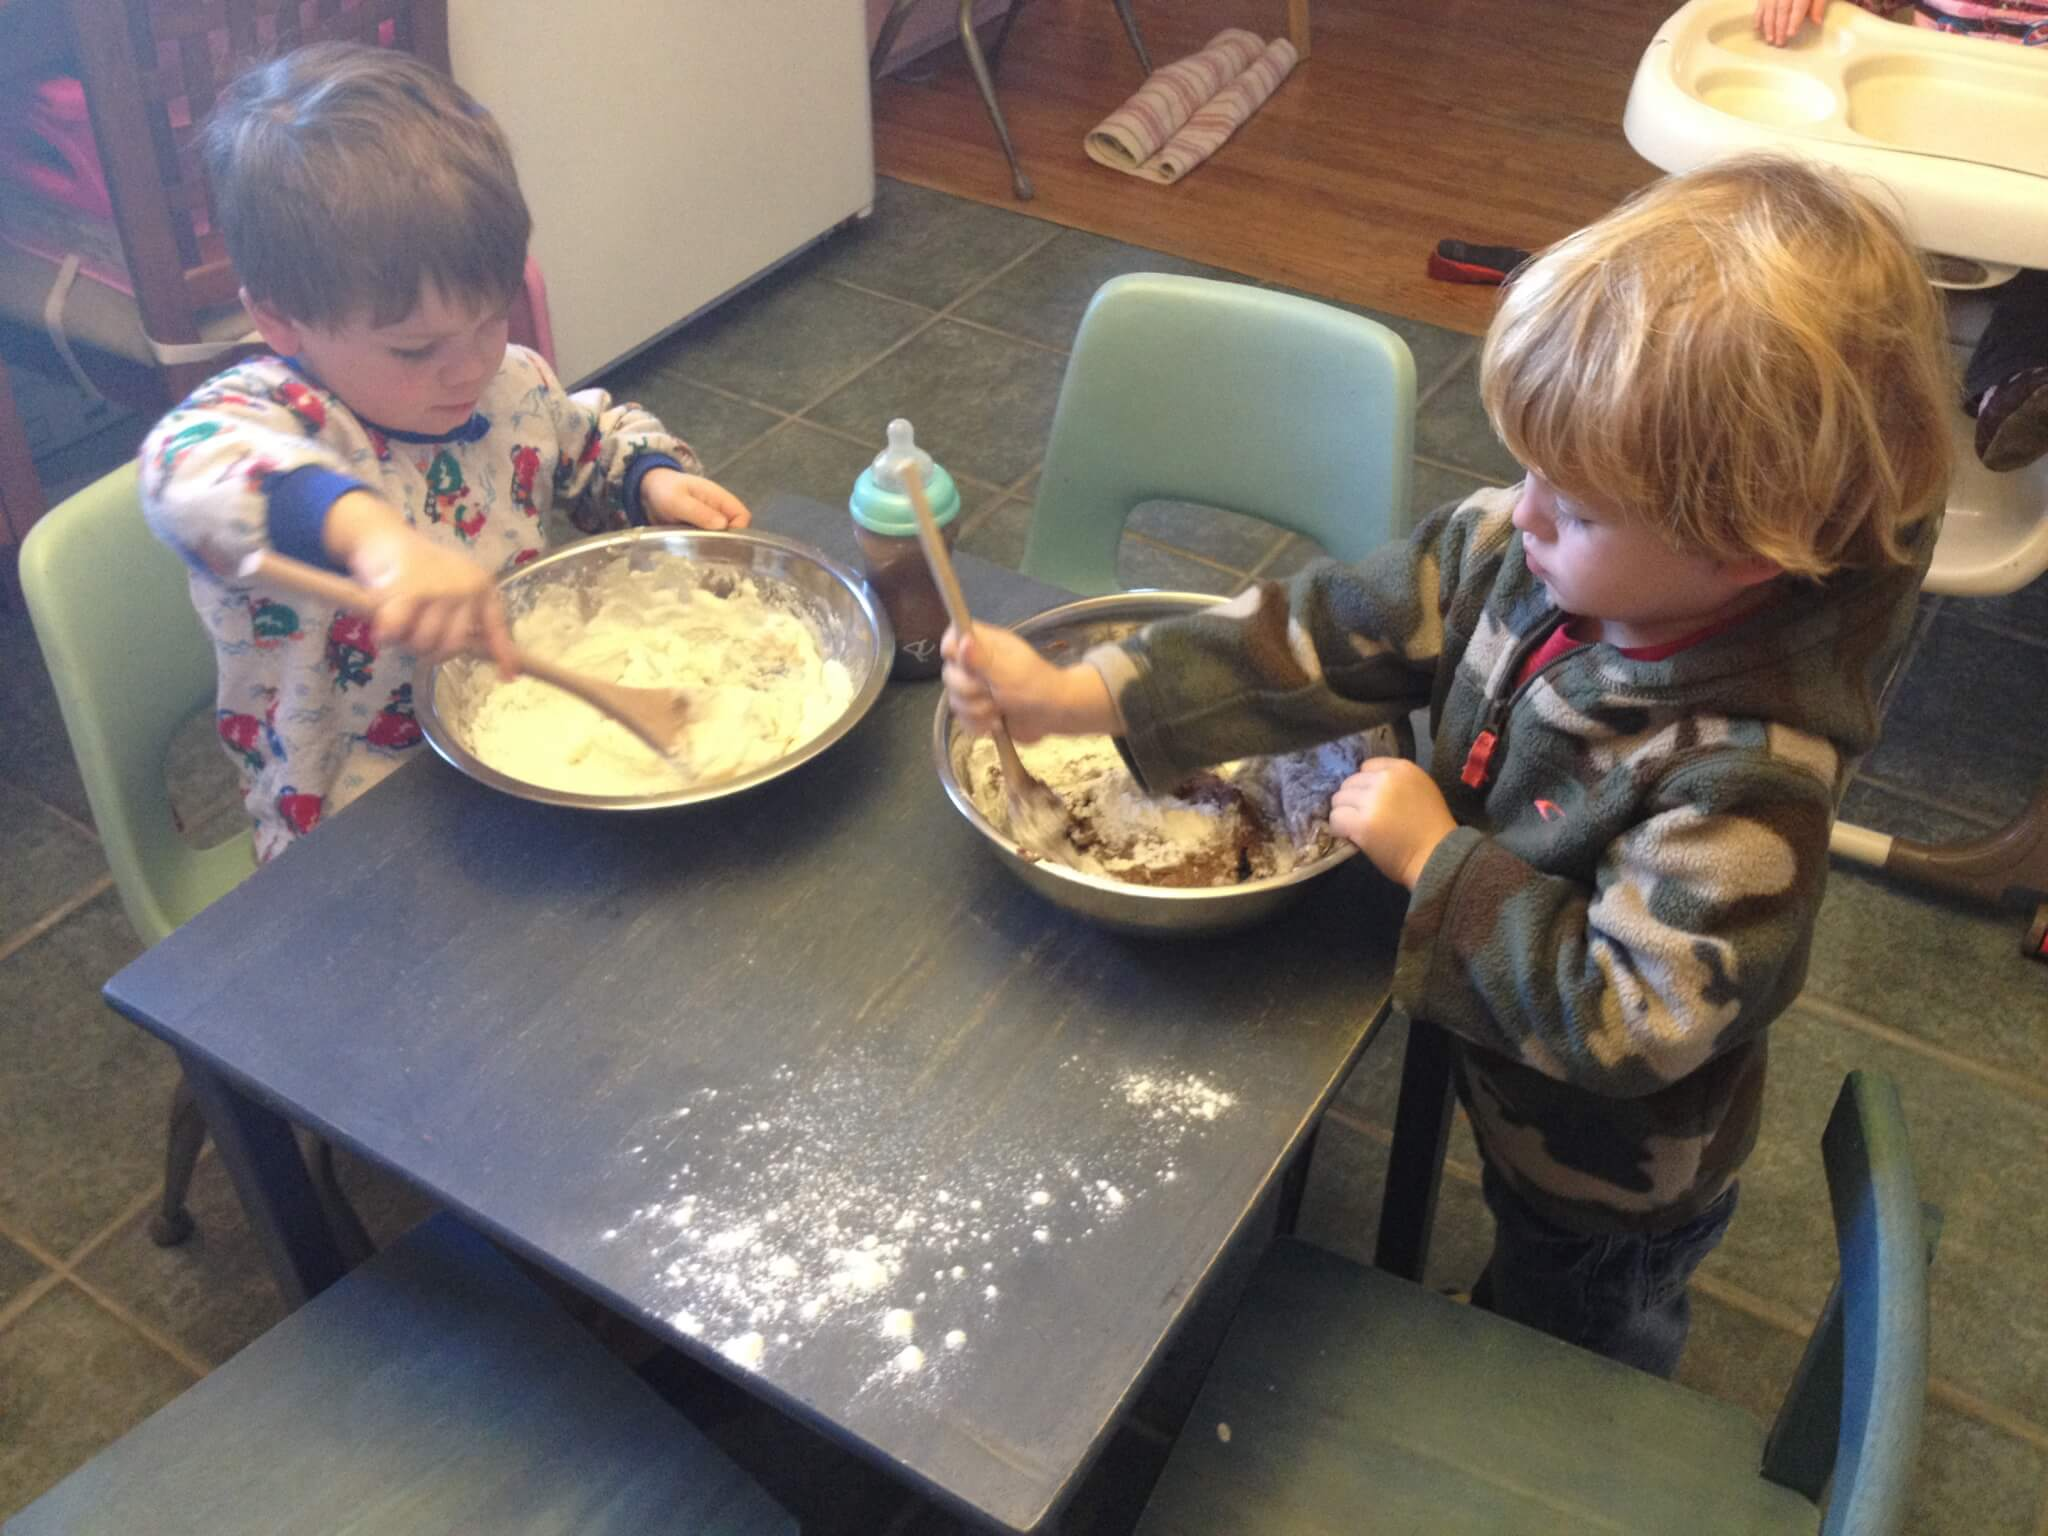 Making Homemade Play Dough in the Kids Kitchen: Let Kids Help